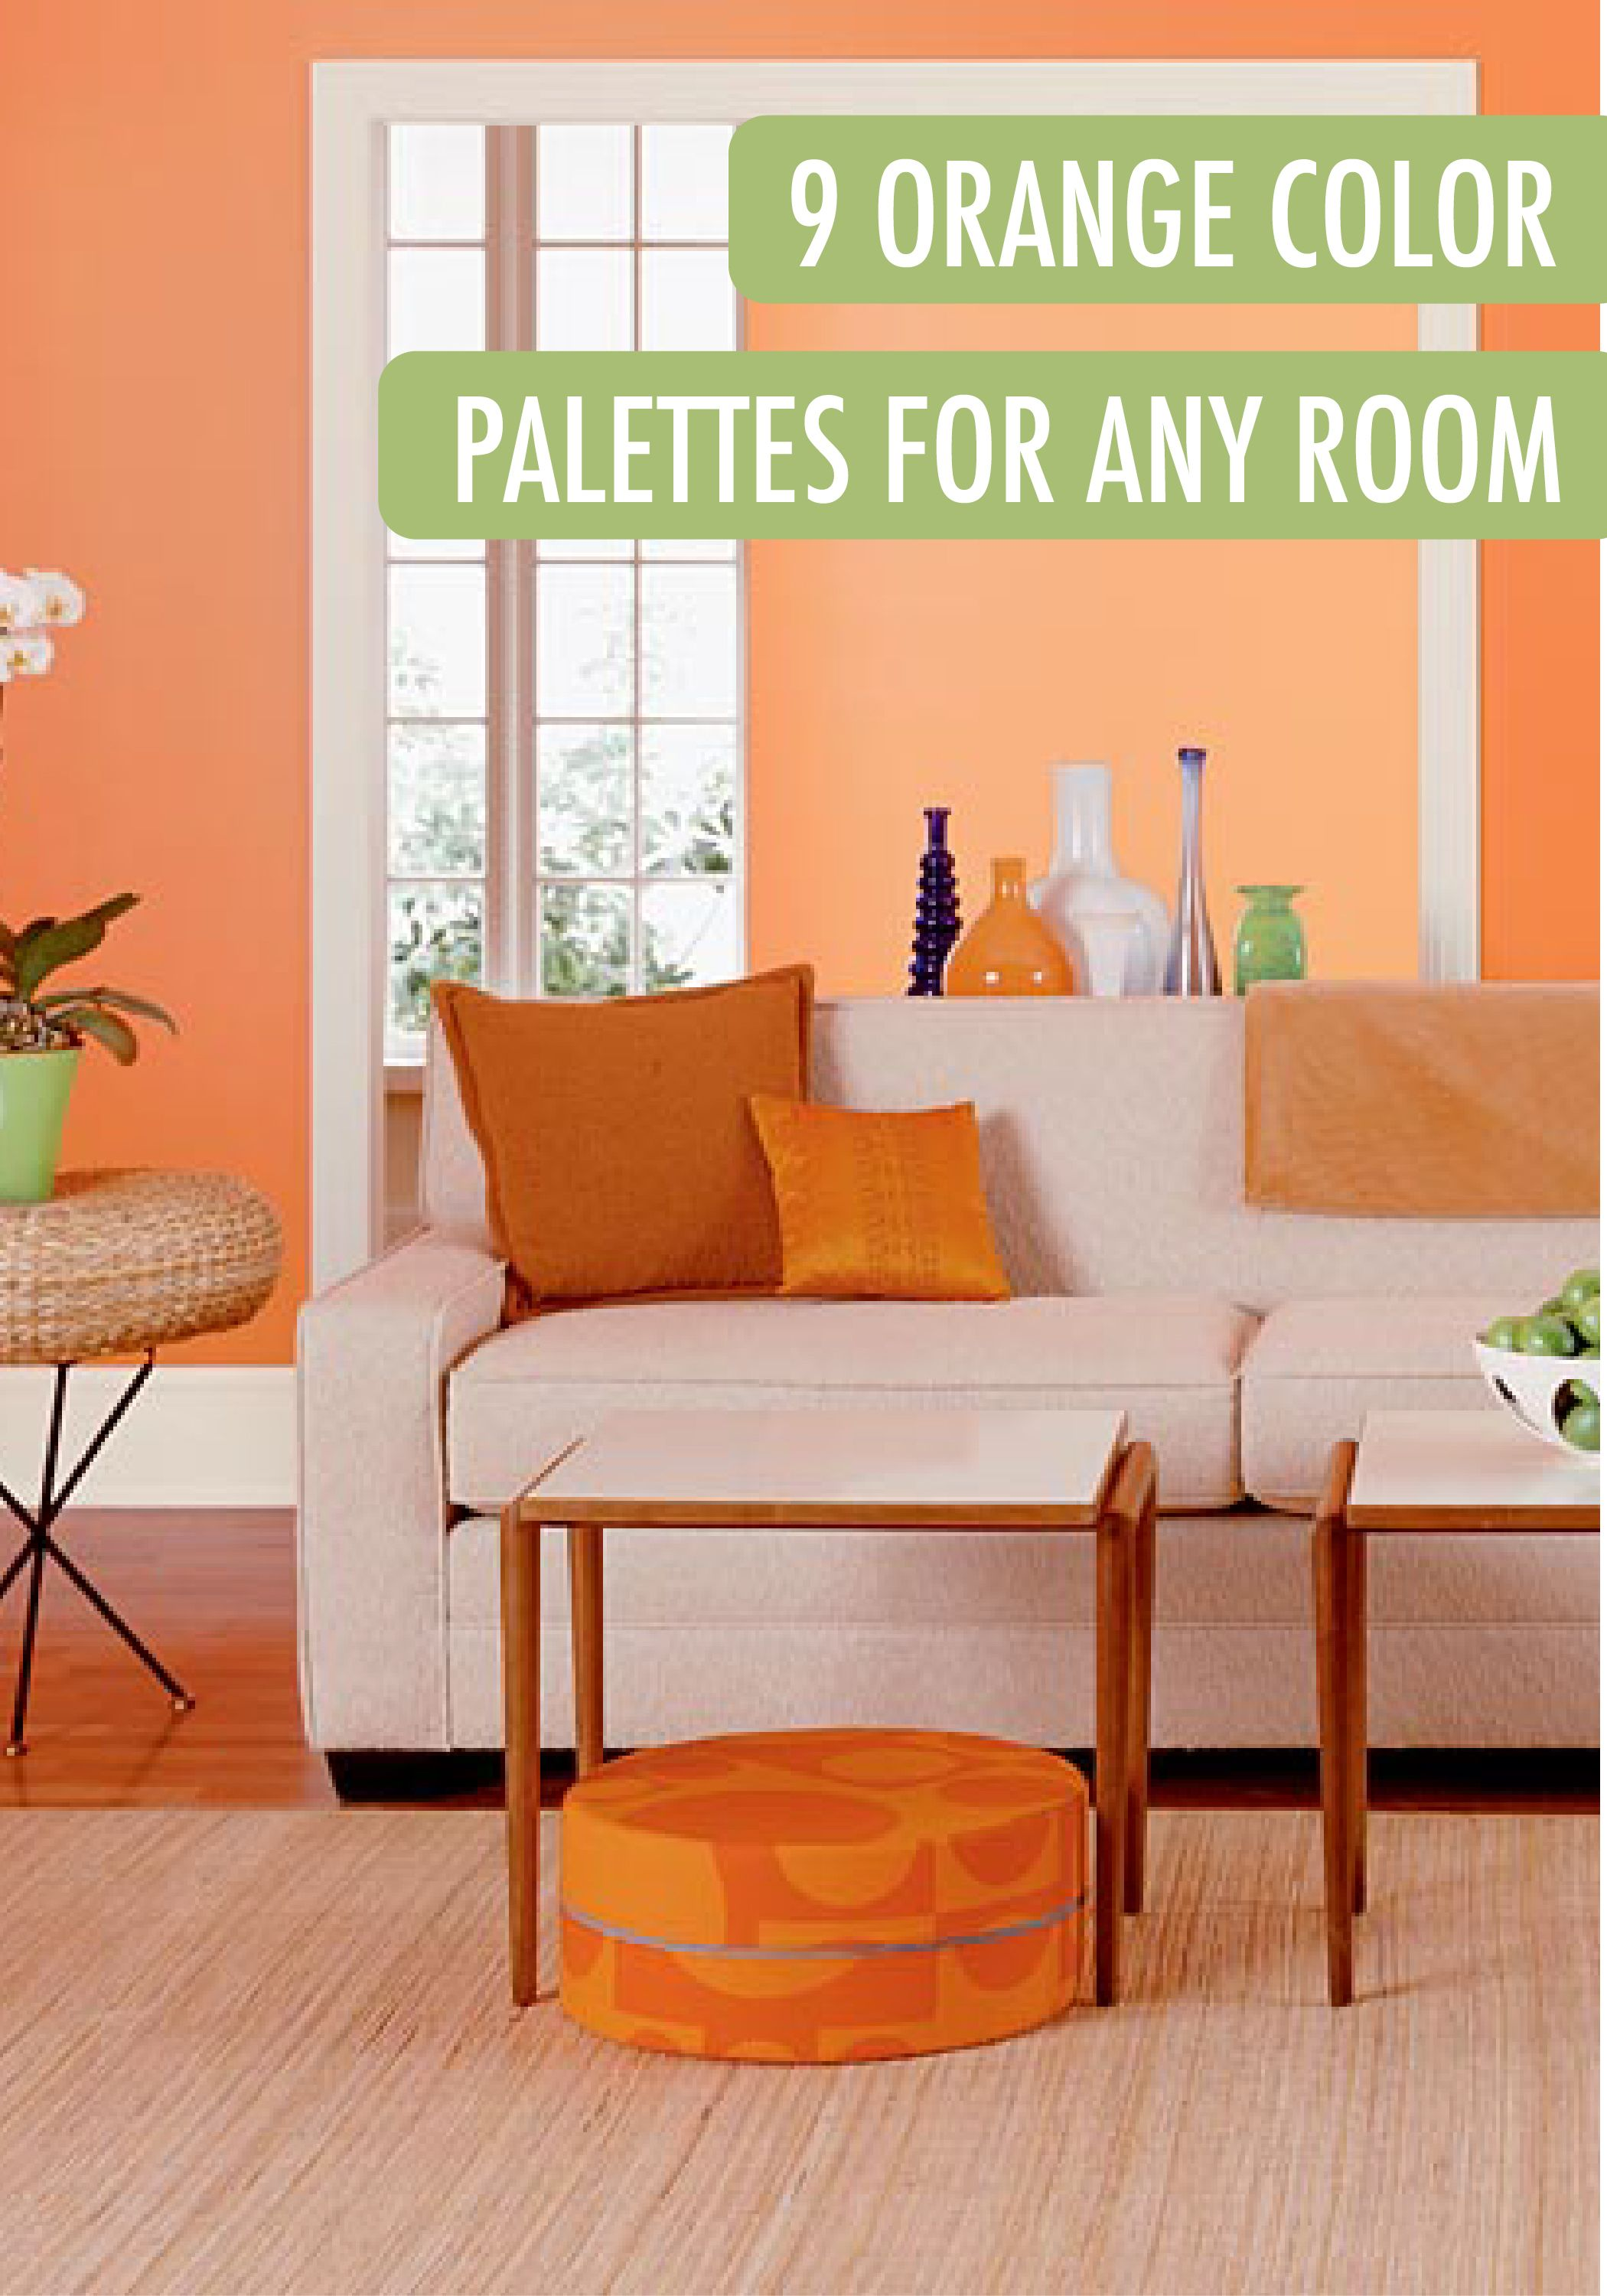 Make Your Home Own By Adding A Vibrant Shade Of Behr Paint To The Walls